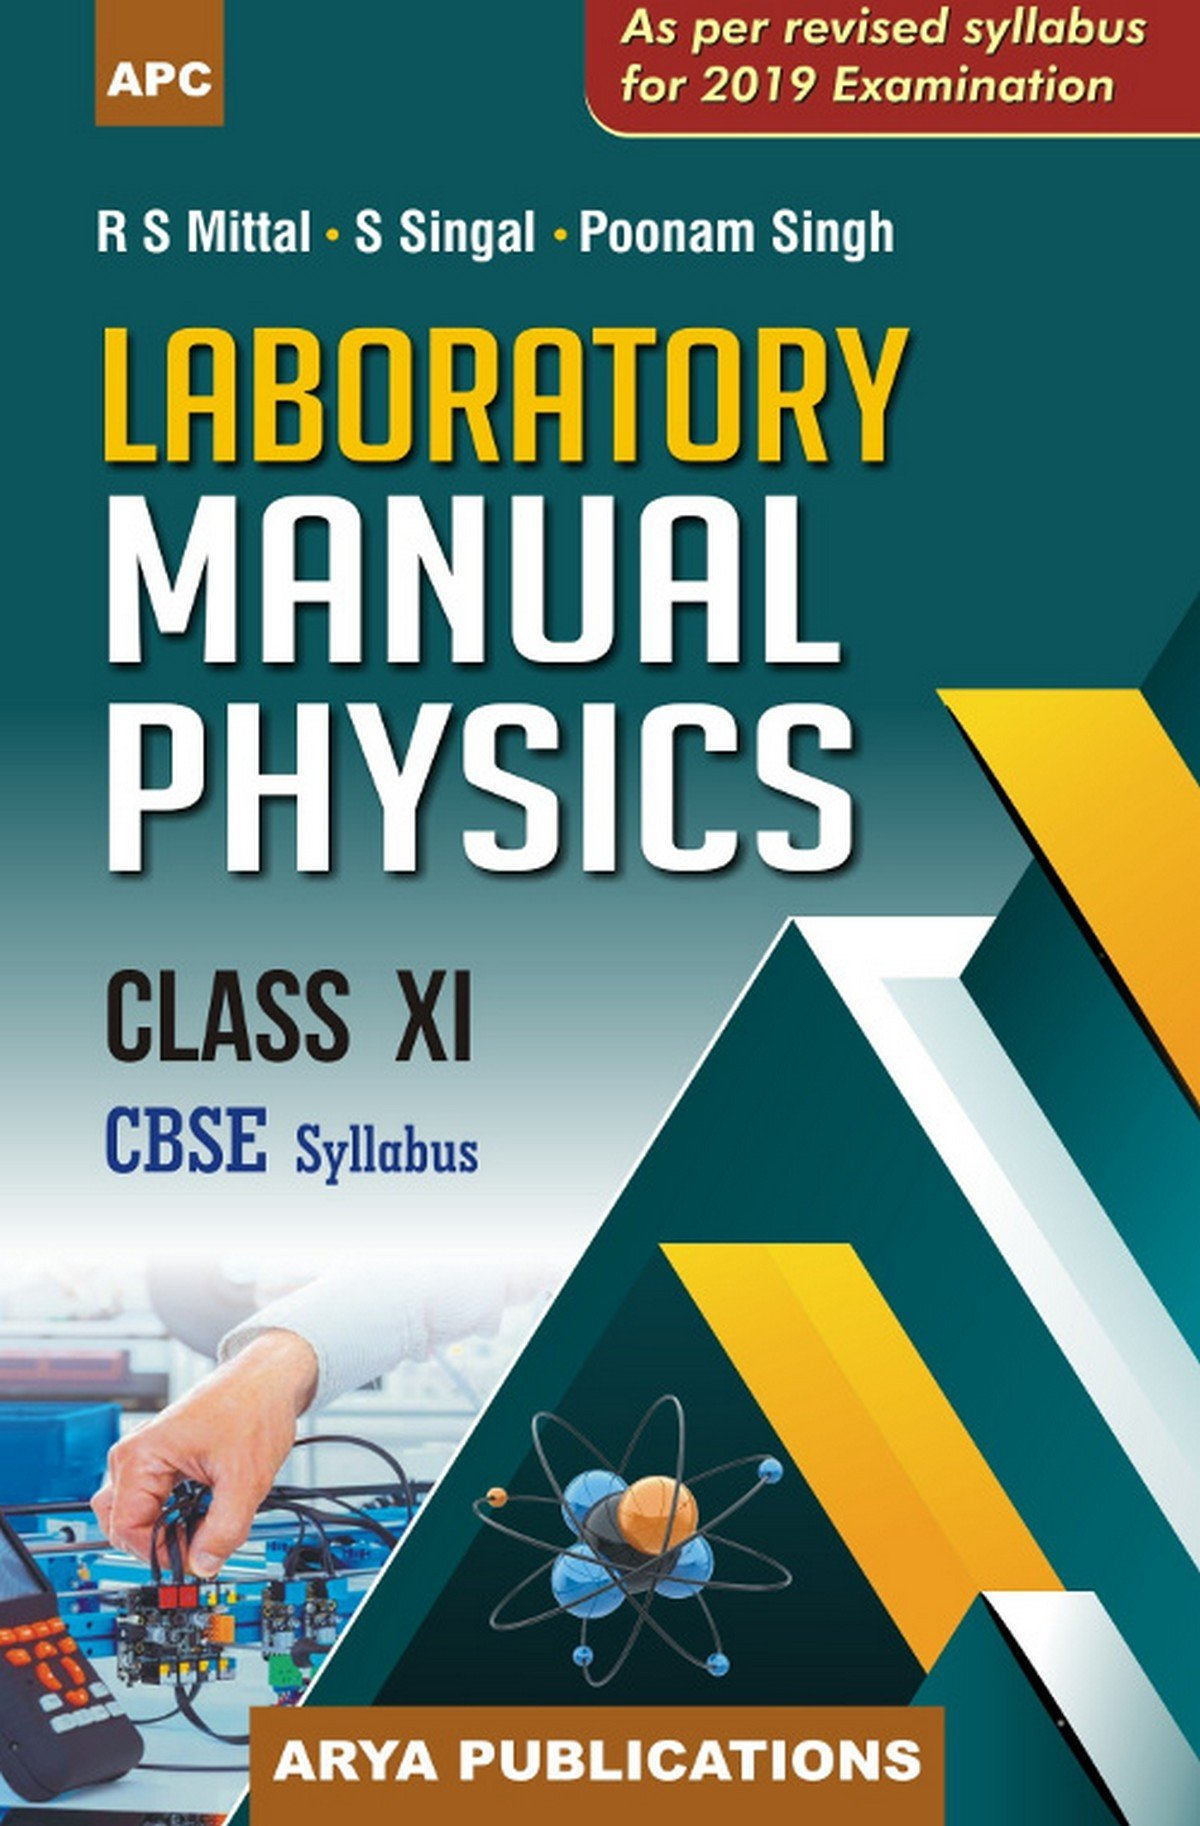 Laboratory Manual Physics Class- XI: Amazon.in: Poonam Singh, R.S. Mittal,  S. Singal: Books